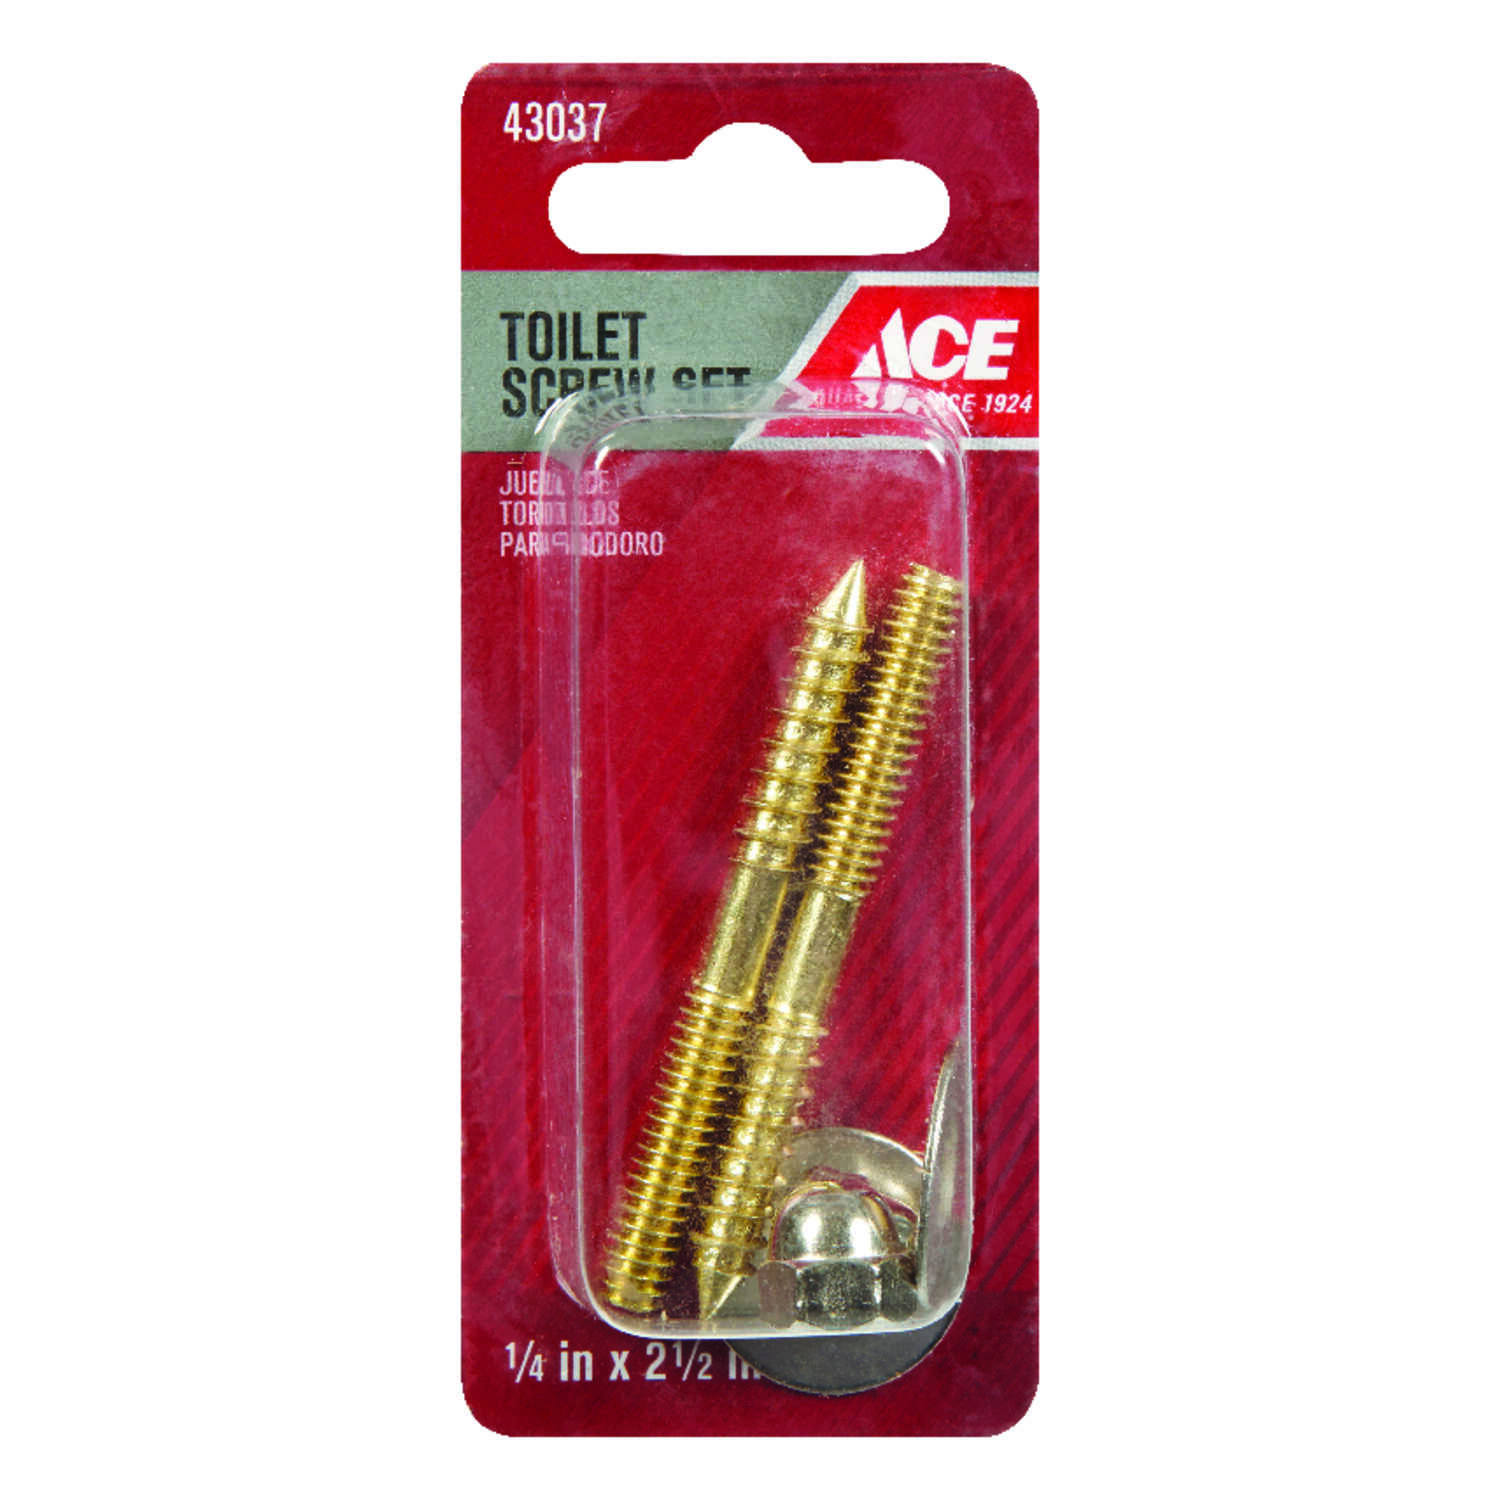 Ace  Toilet Screw Set  1/4 in. H x 2-1/2 in. L Brass